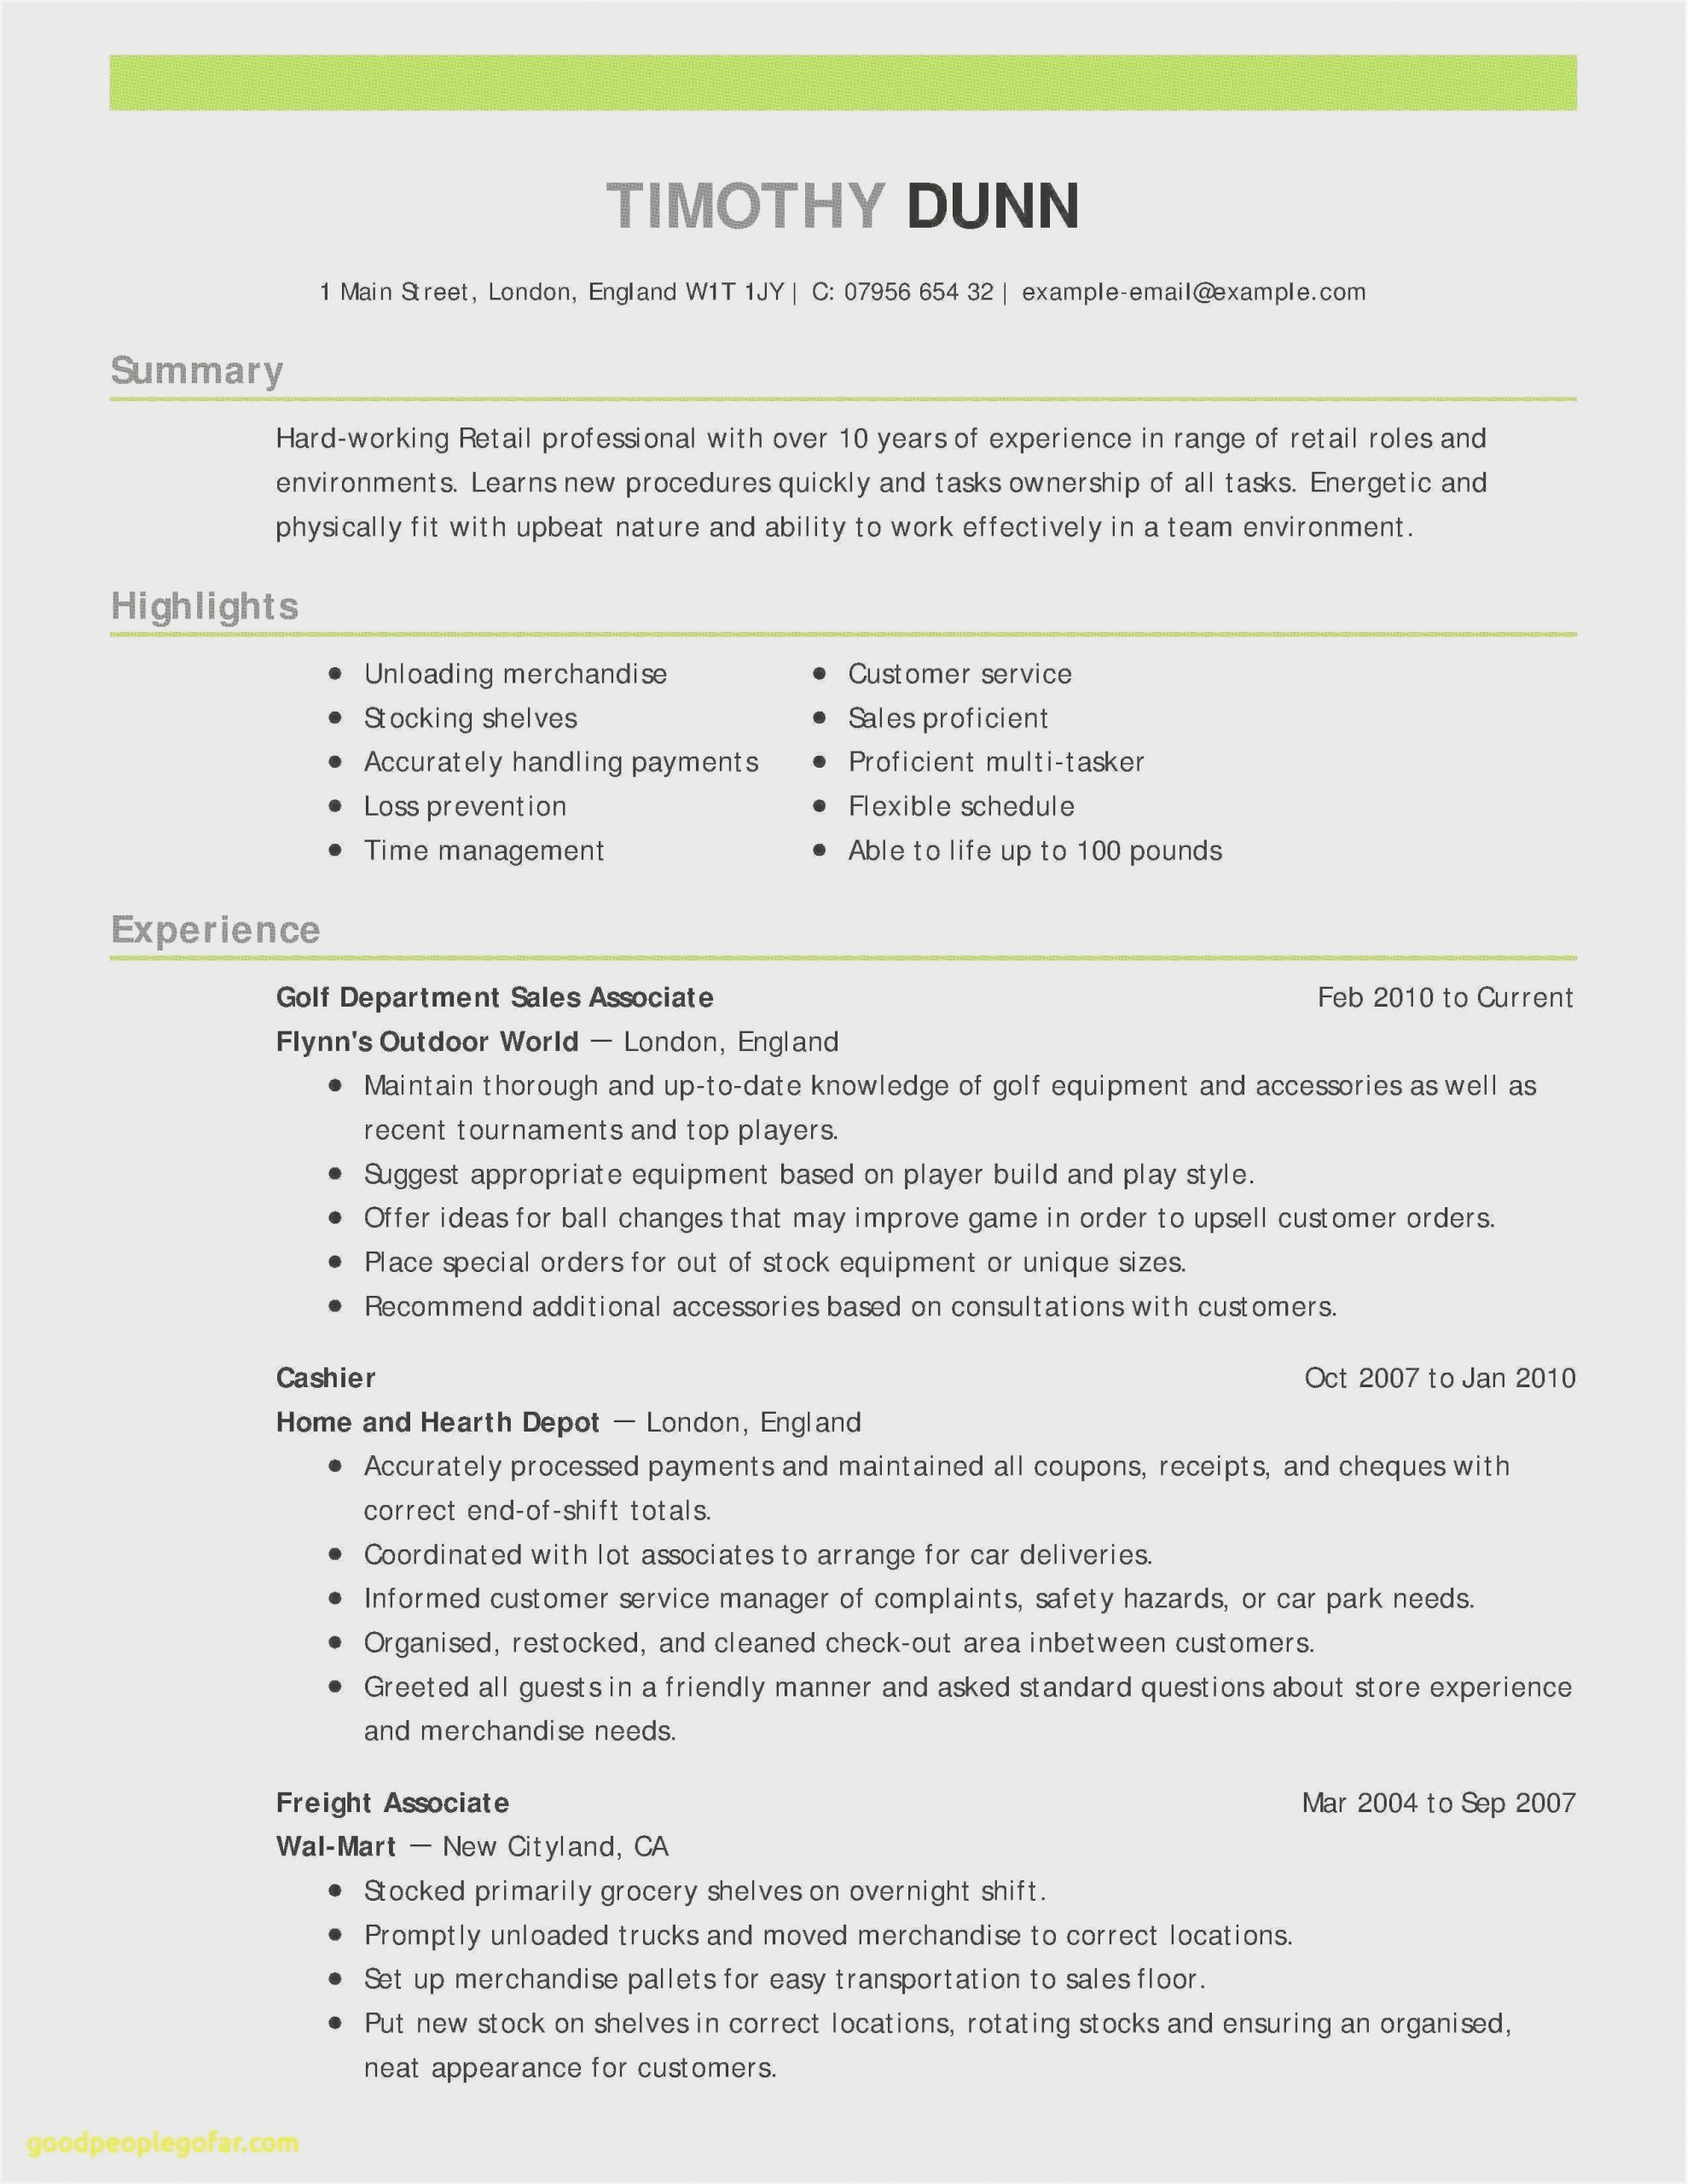 examples of professional resume templates sample for experienced samples resumes scaled Resume Sample Resume Templates For Experienced